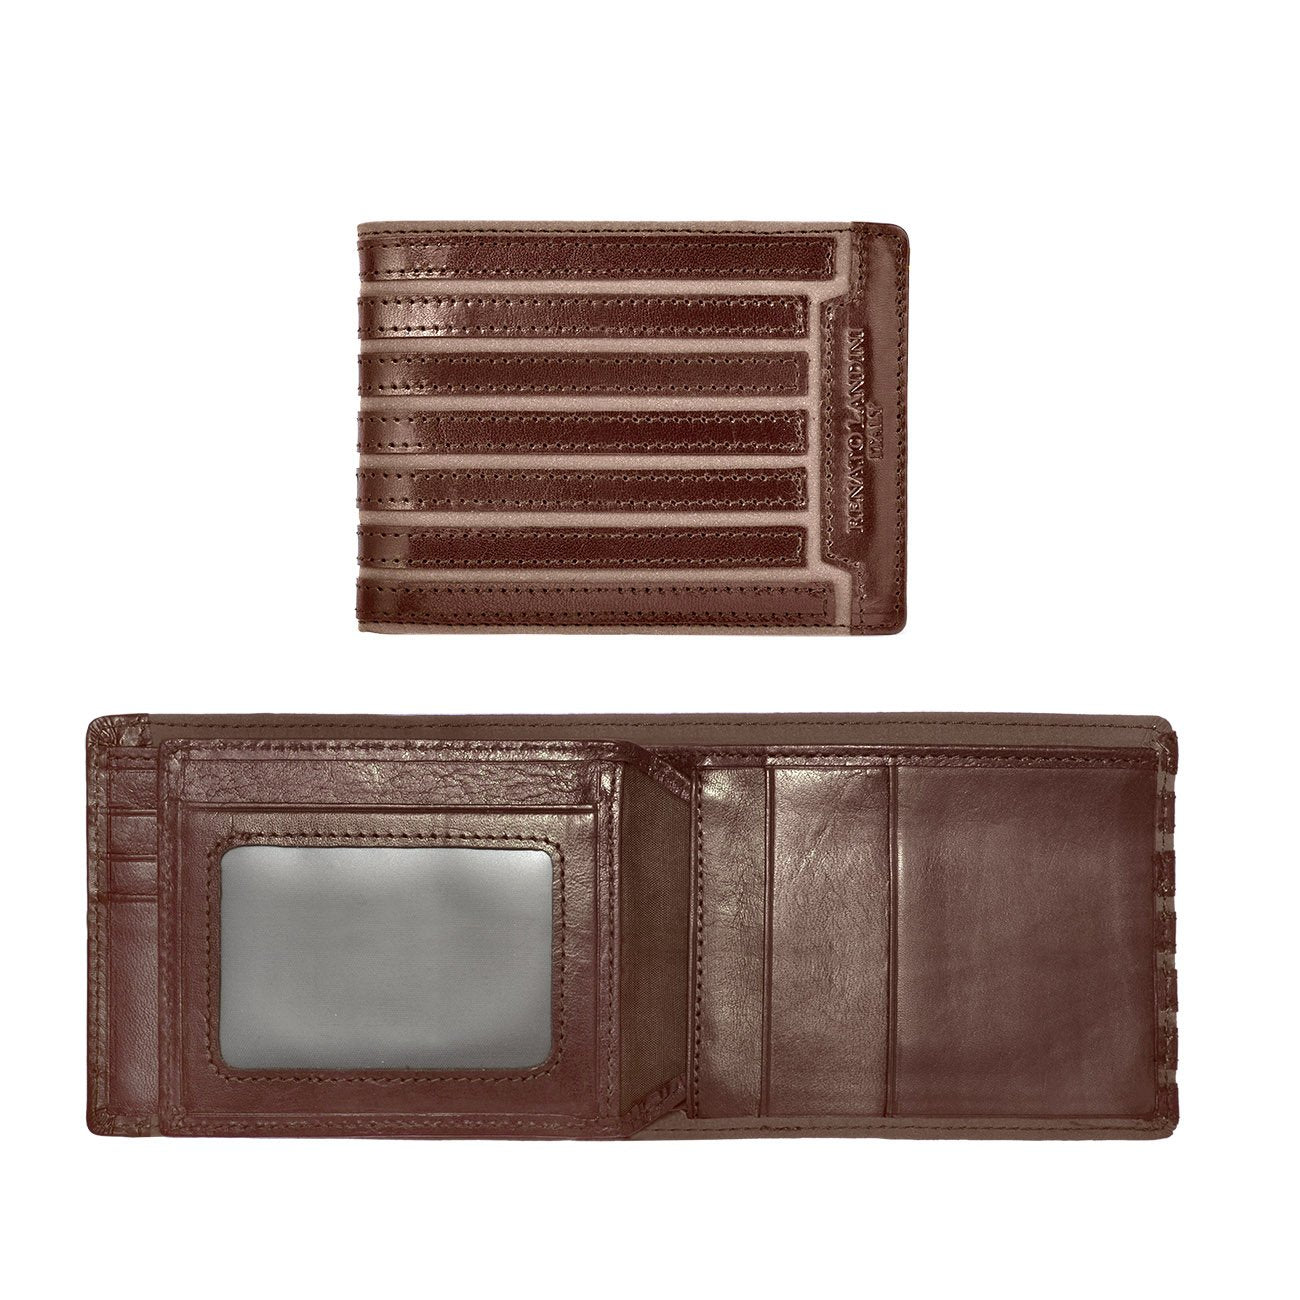 RENATO LANDINI Wallet Set